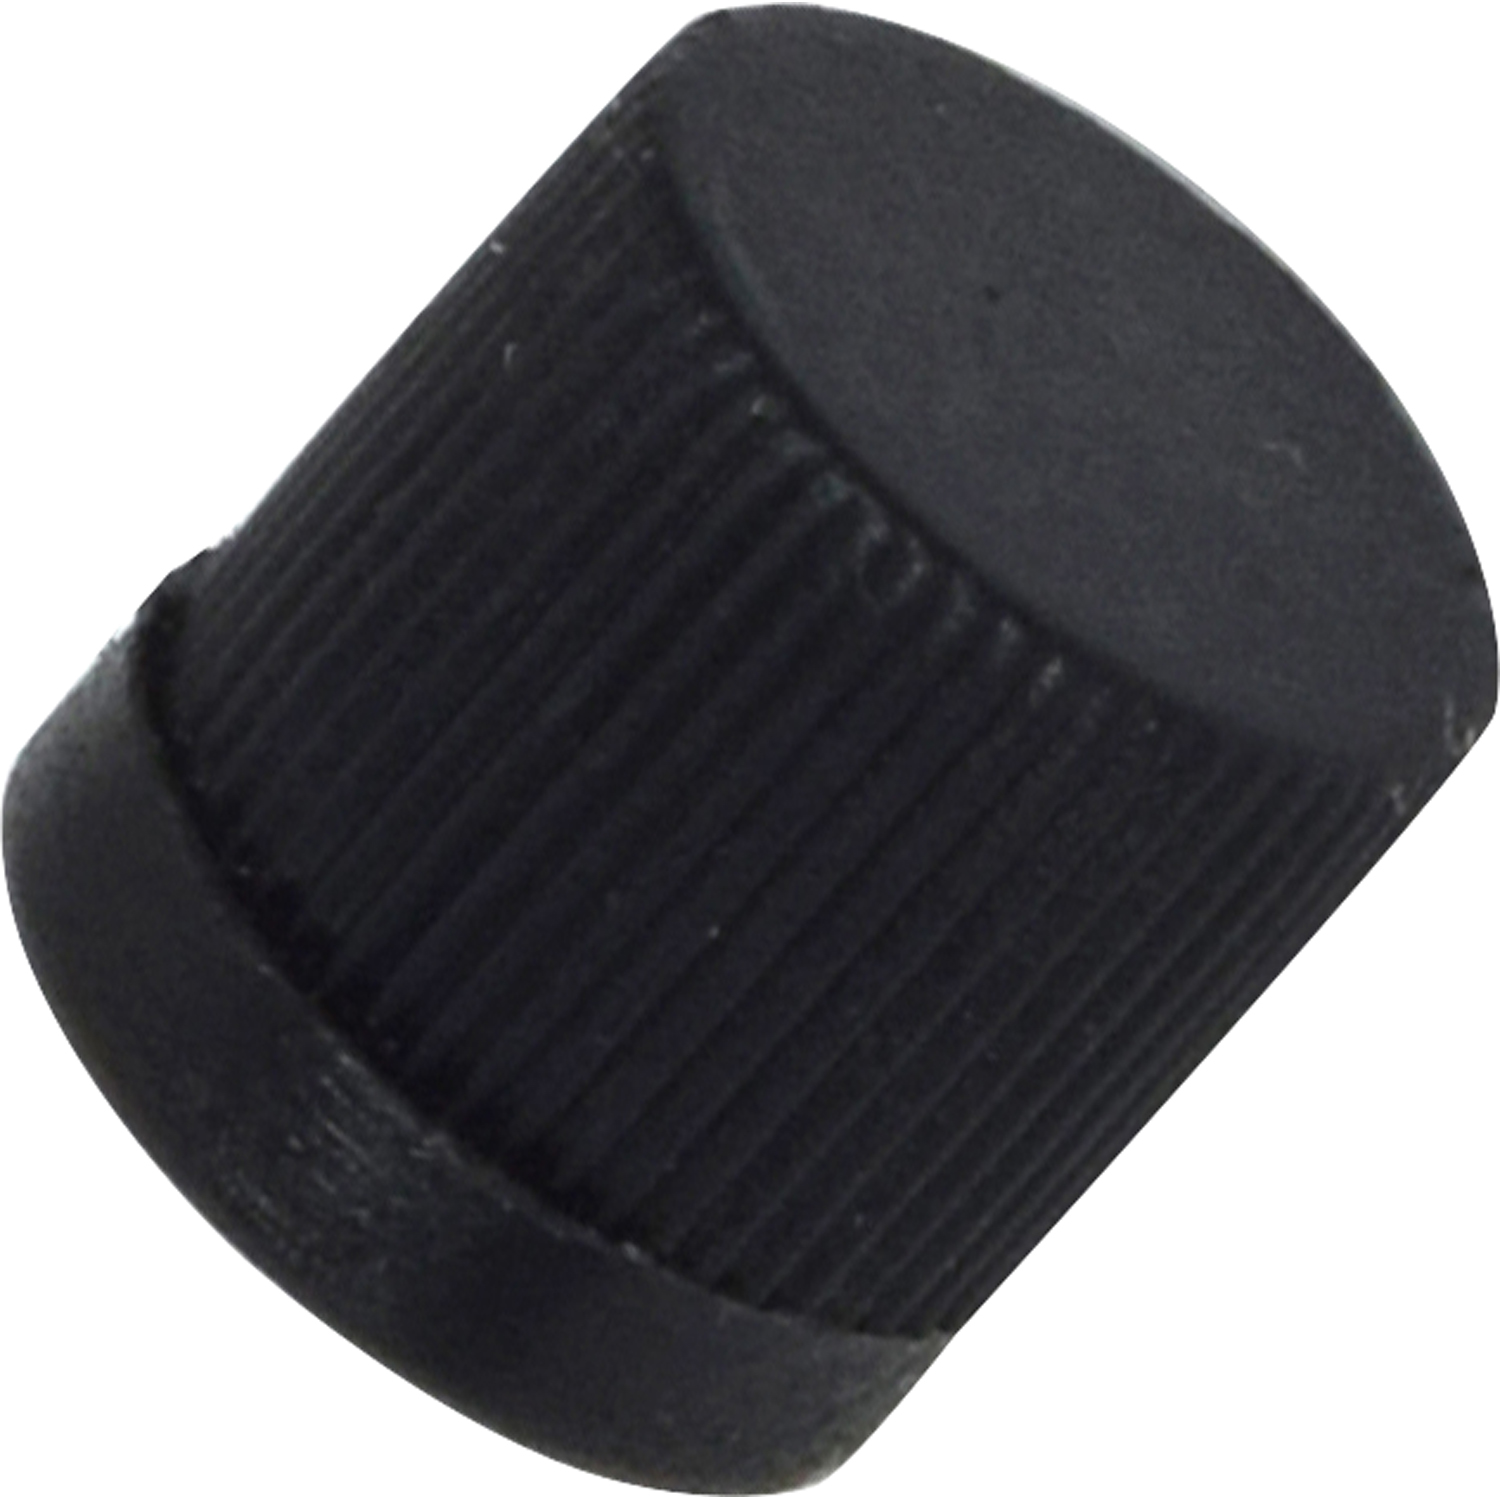 "Cap High/Low Side 1/4"" Male Flare Plastic Service Port Service Cap"